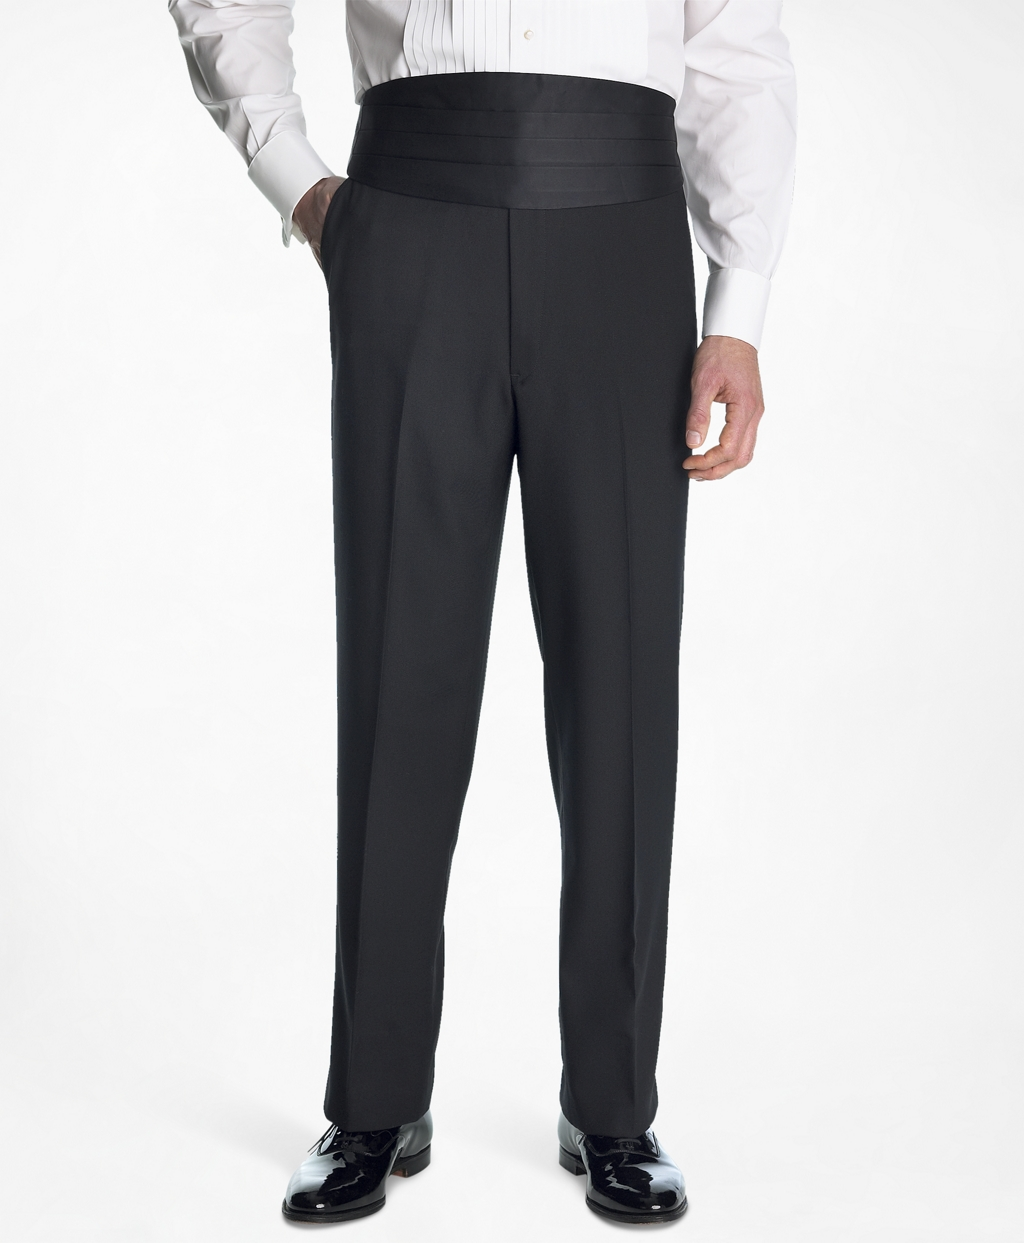 Edwardian Titanic Men's Formal Tuxedo Guide Brooks Brothers Mens 1818 Plain-Front Tuxedo Trousers $300.00 AT vintagedancer.com